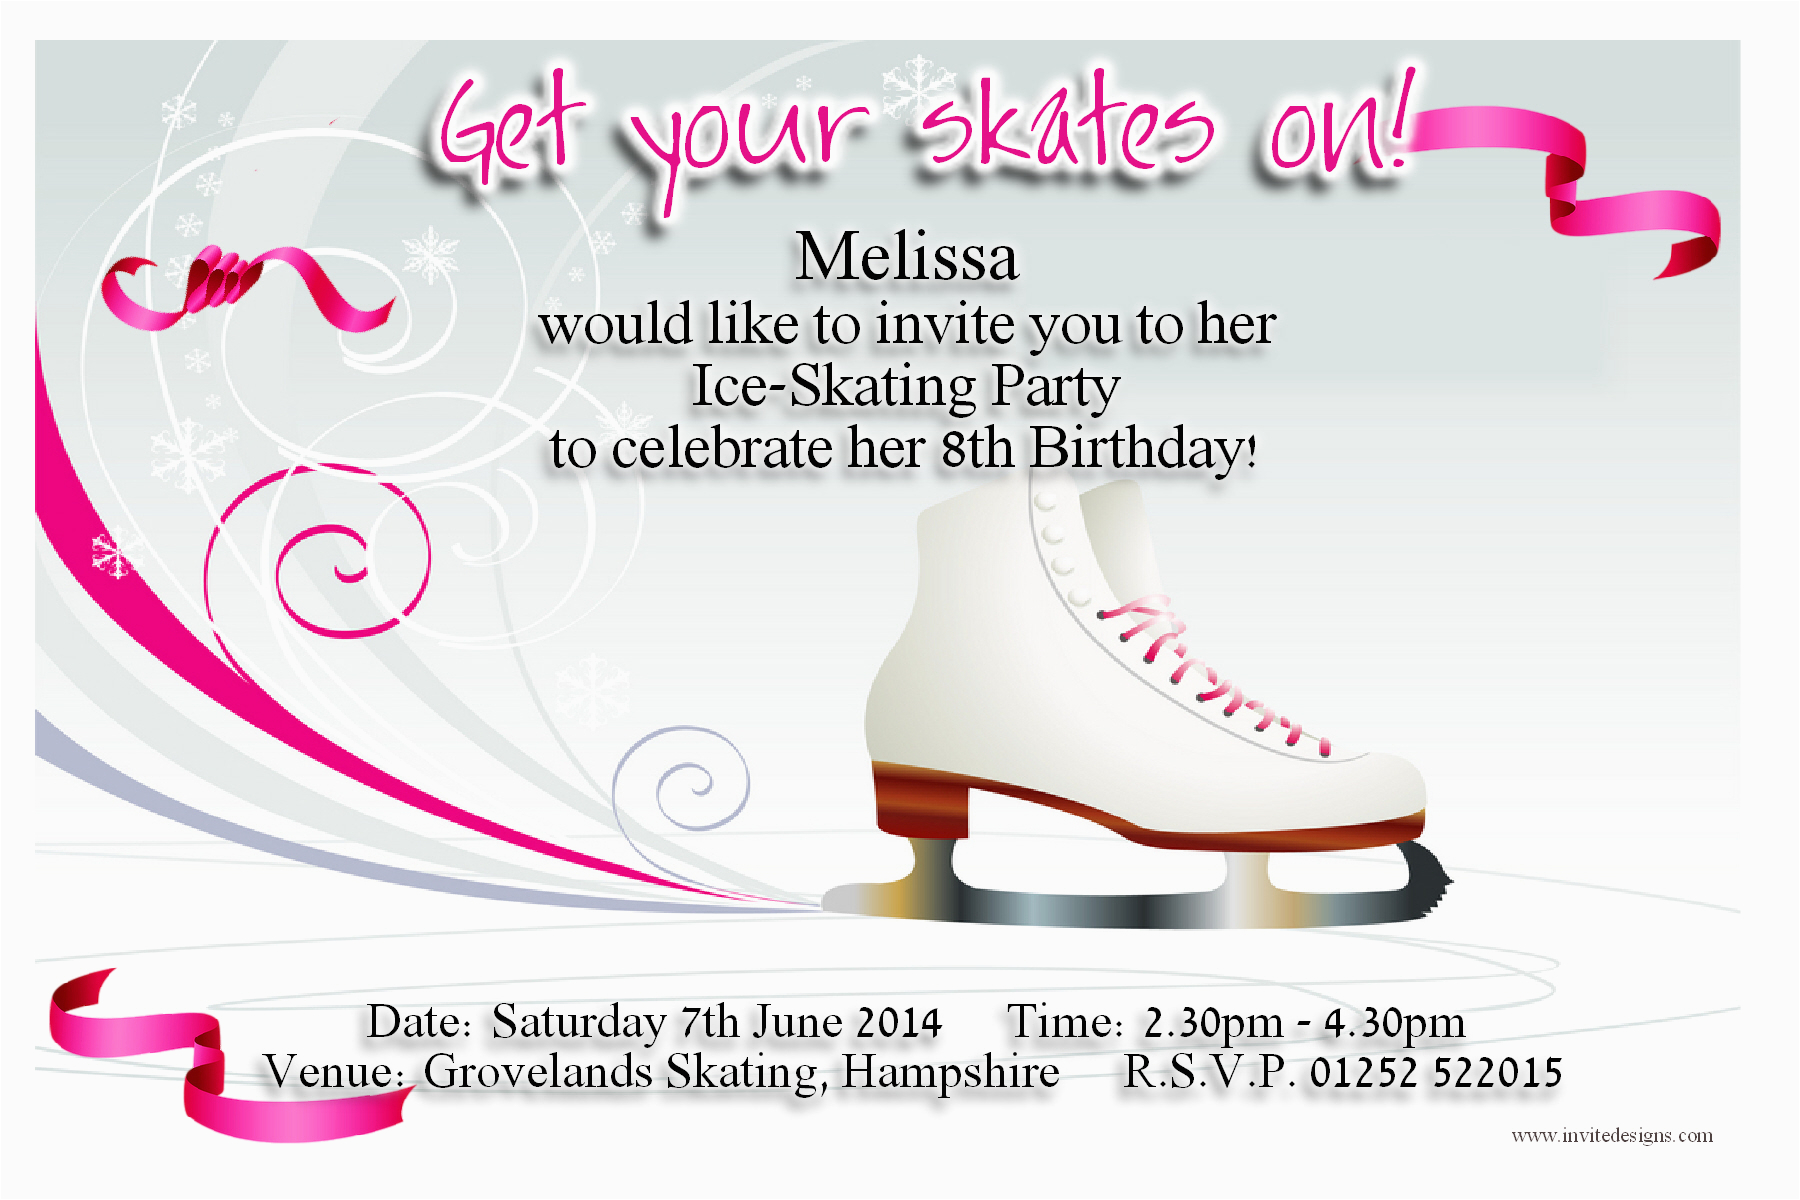 image regarding Free Printable Skating Party Invitations named Ice Skating Birthday Get together Invites Cost-free Printable Simplest